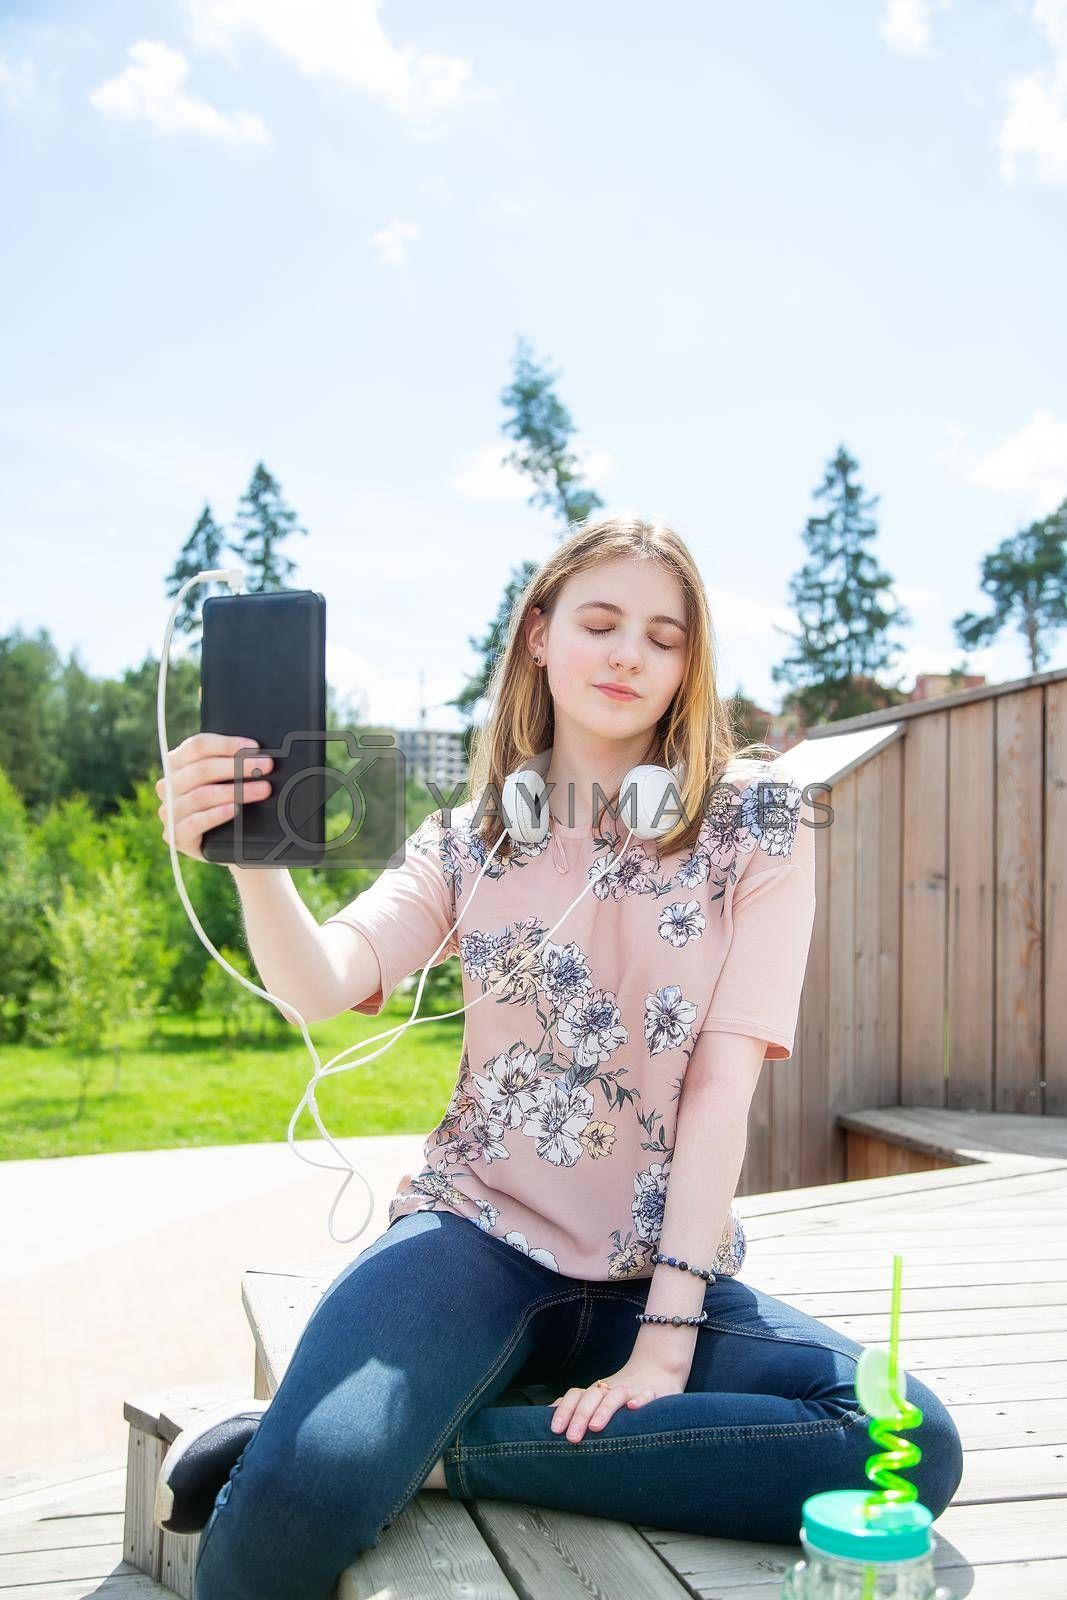 A young girl of 20 years old Caucasian appearance makes a selfie on her mobile phone while sitting on a wooden podium in the park on a summer day.The girl is dressed in a floral T-shirt and jeans,